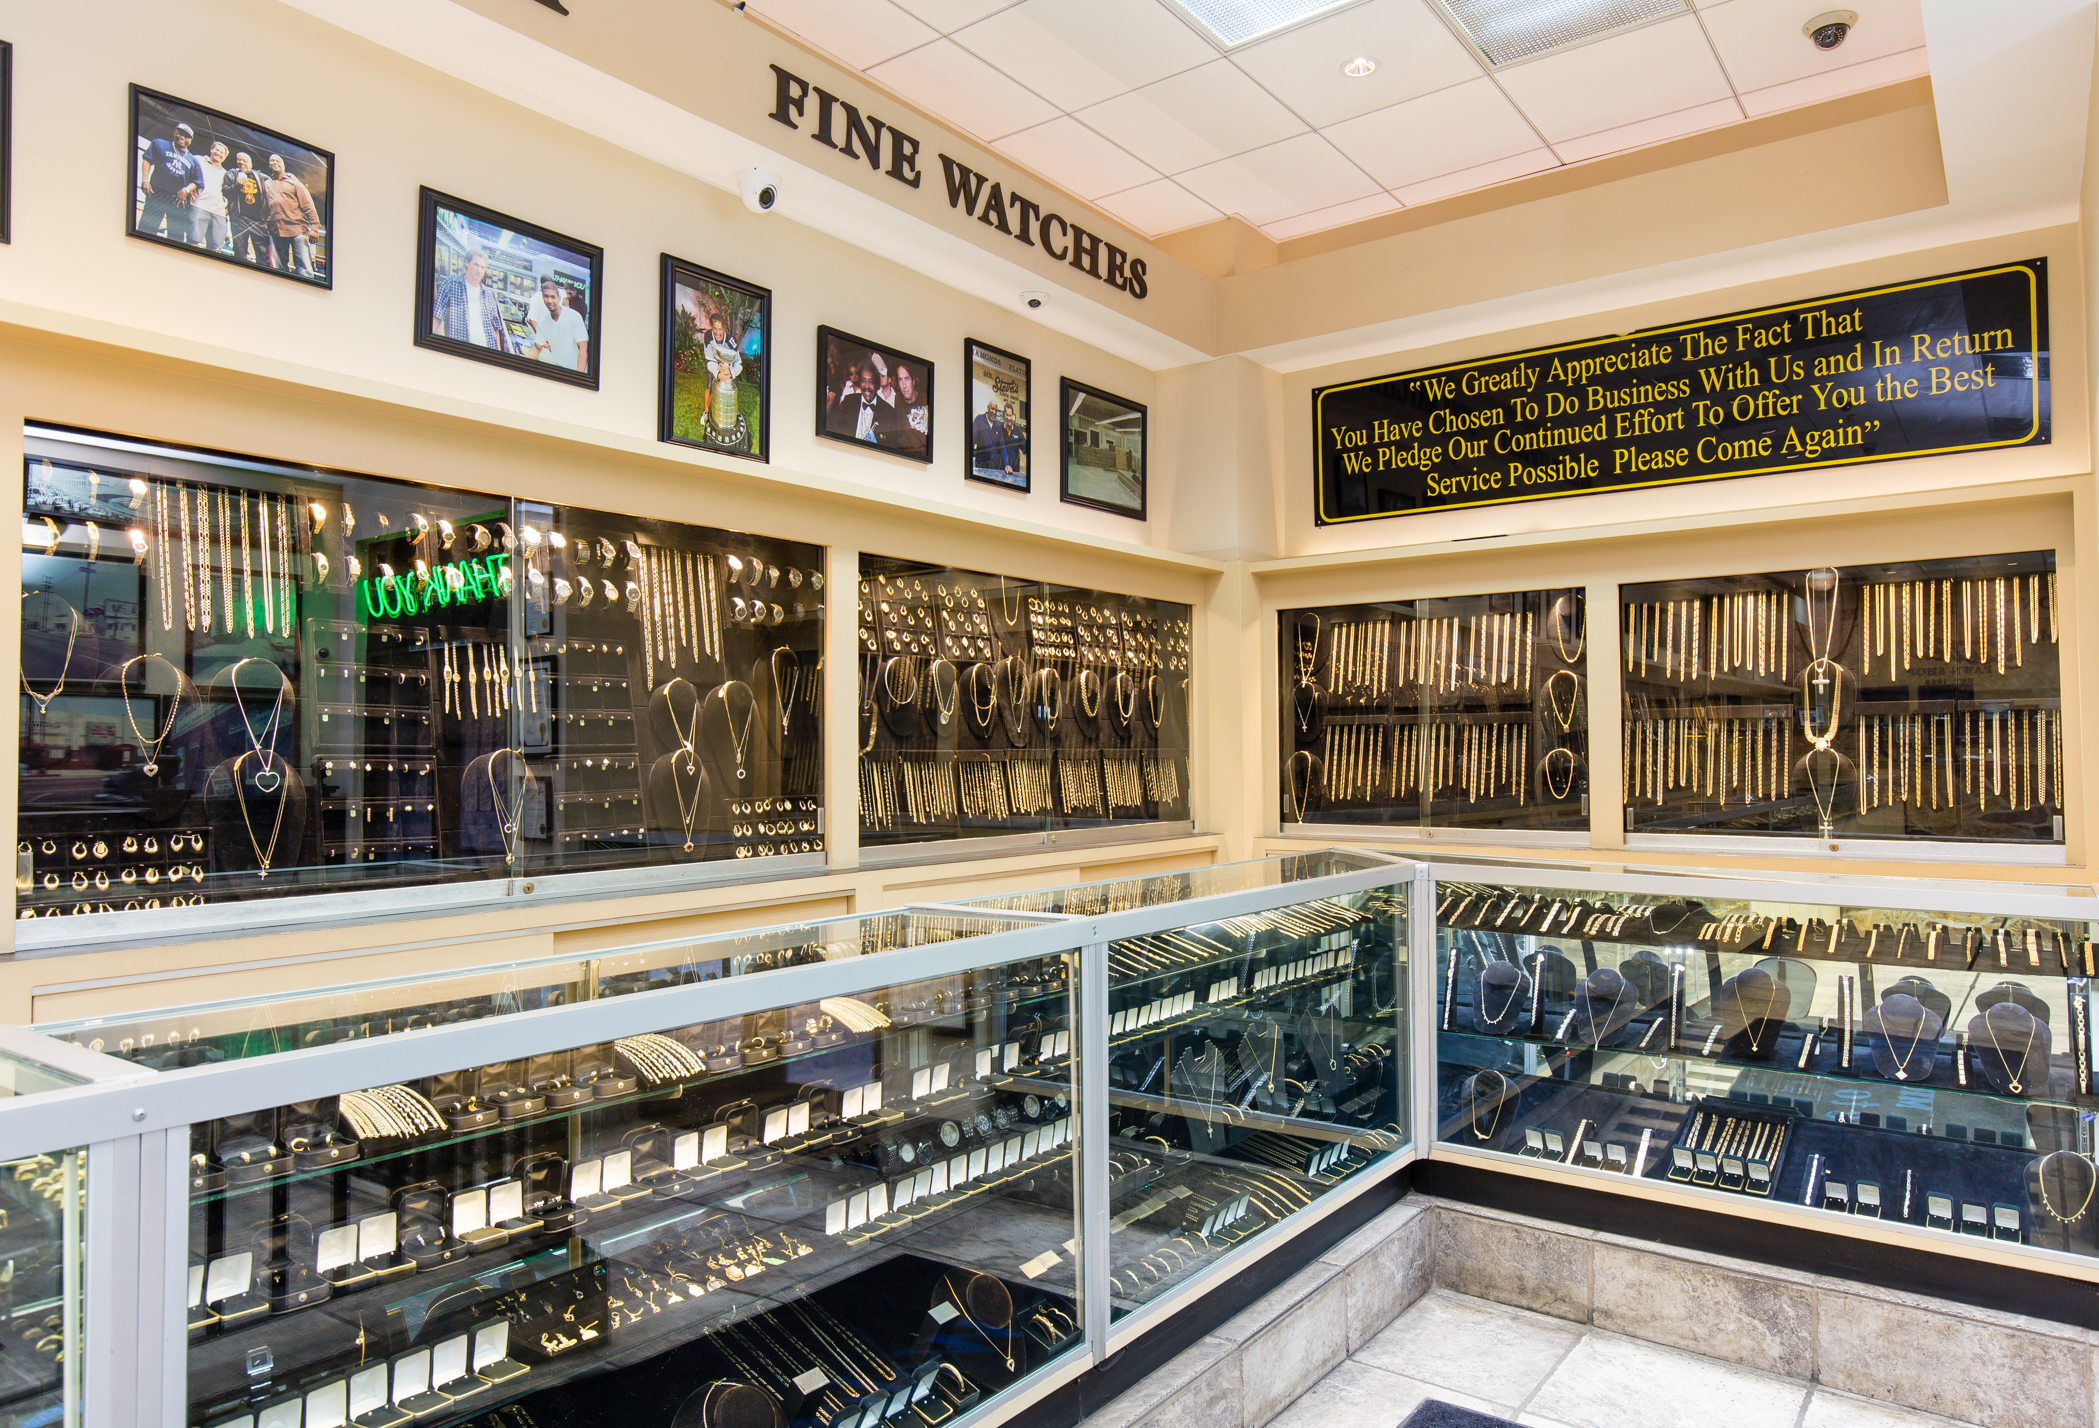 Mr. Steve's Pawnshop is a family owned and operated business. It has served the Los Angeles area or over 30 years.